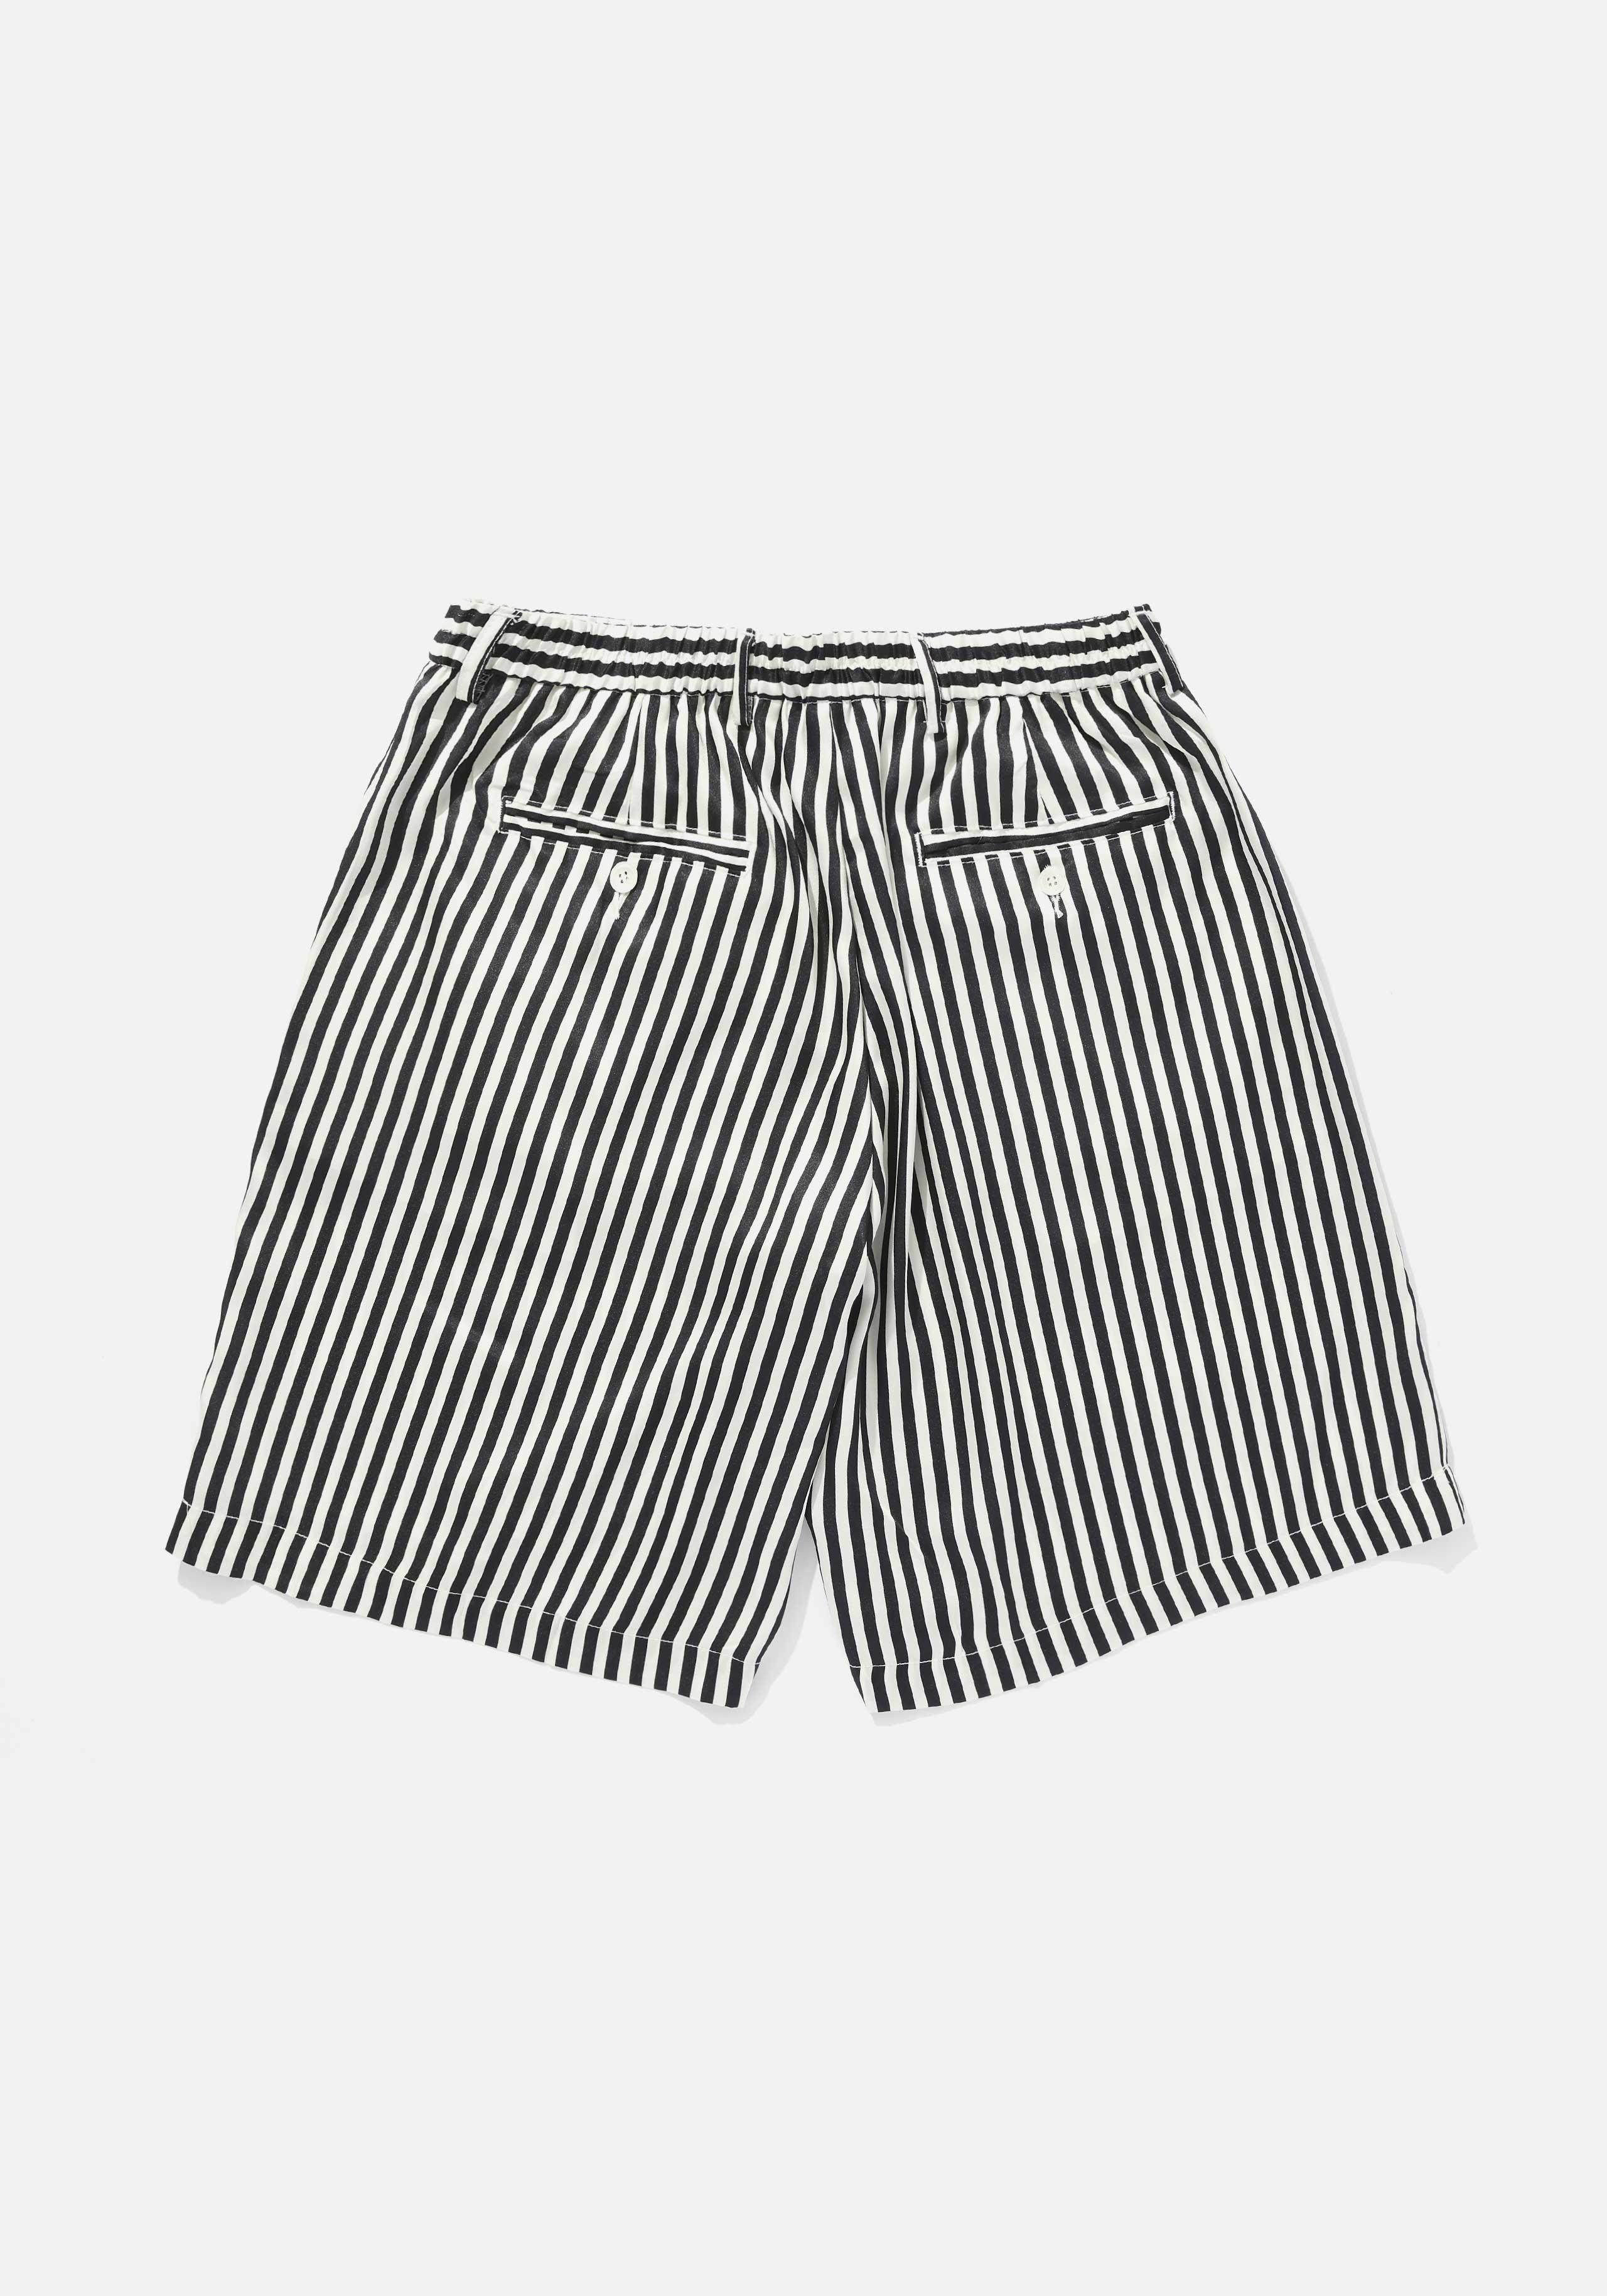 mki vacation shorts 2